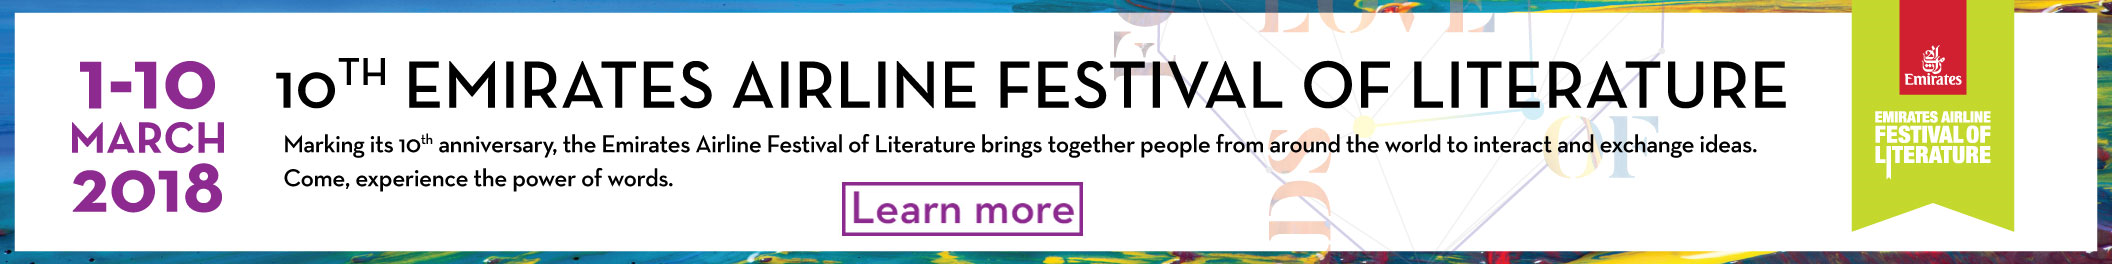 Emirates Airline Festival of Literature - category with learn more